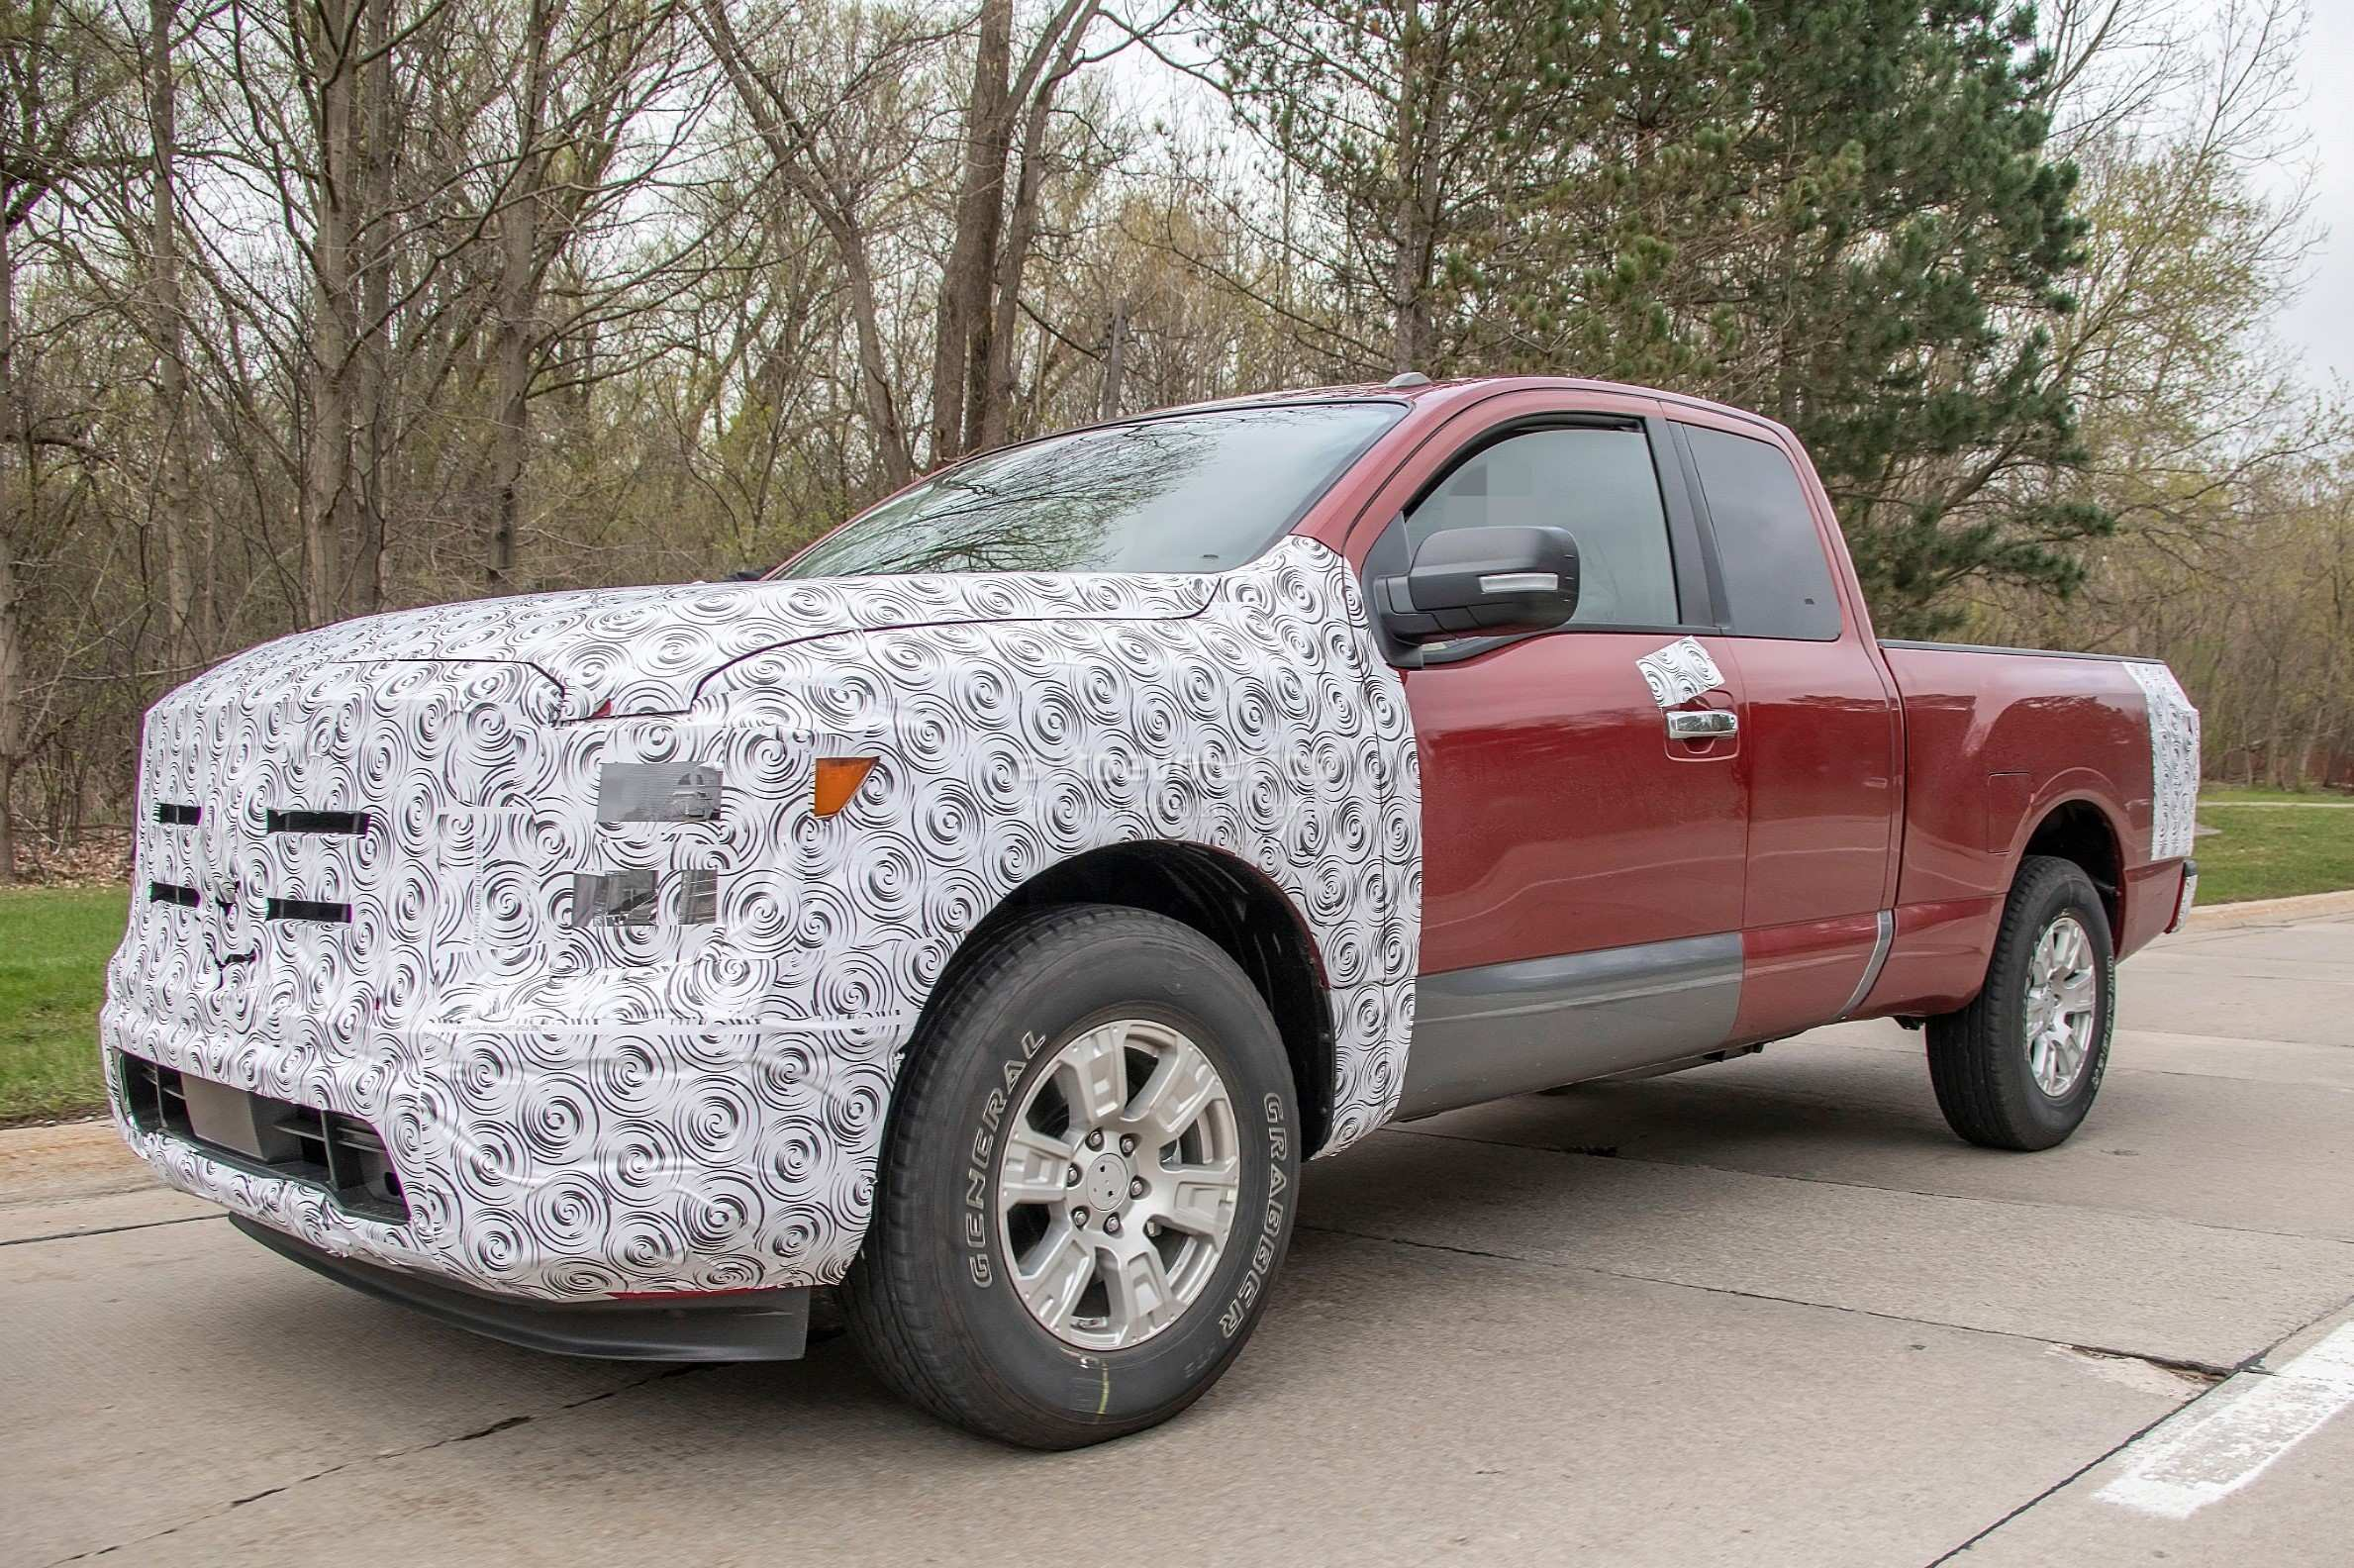 68 All New 2020 Nissan Titan Redesign